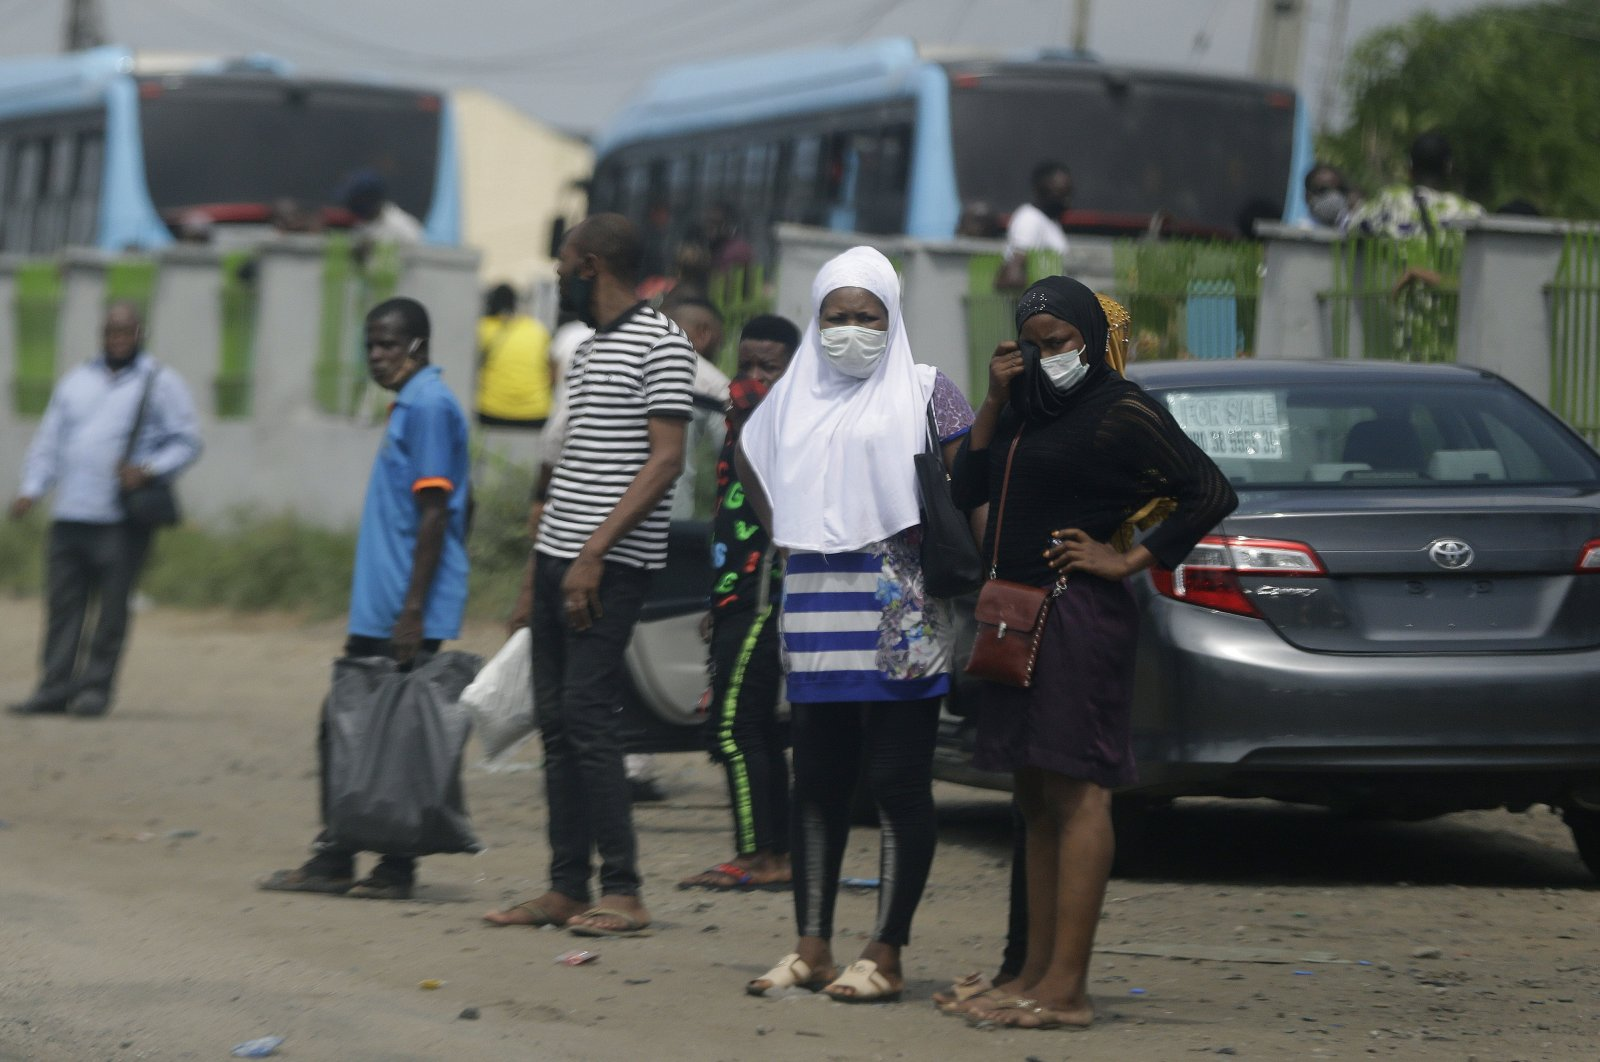 People wearing face masks to protect against the coronavirus wait for a commercial bus, Lagos, May 20, 2020. (AP Photo)